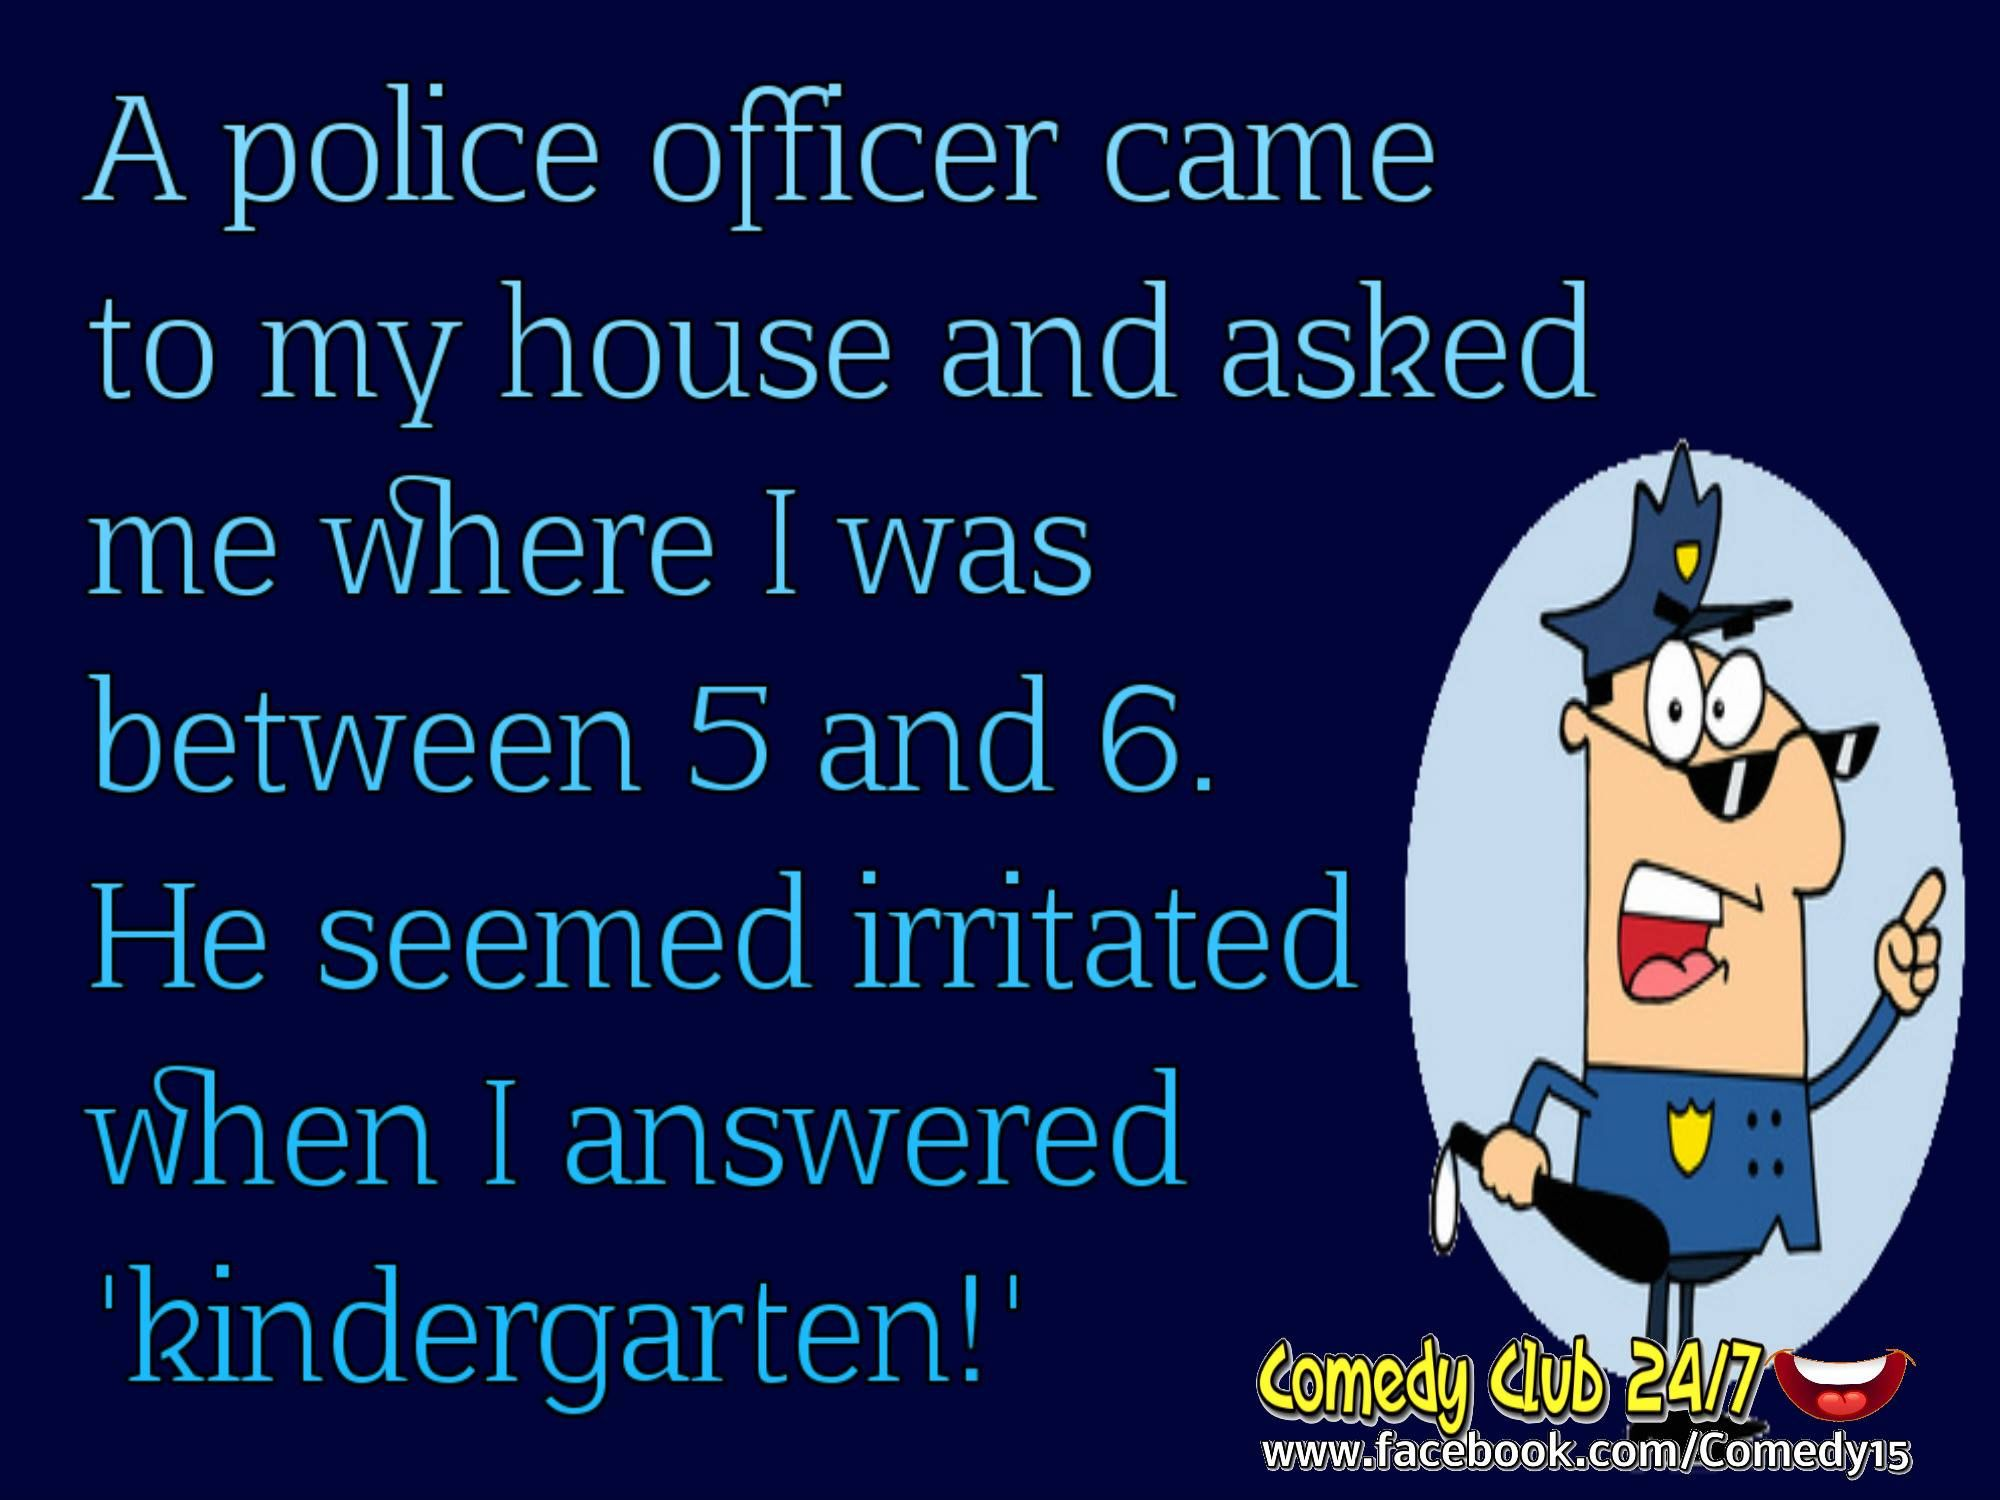 Officer jokes